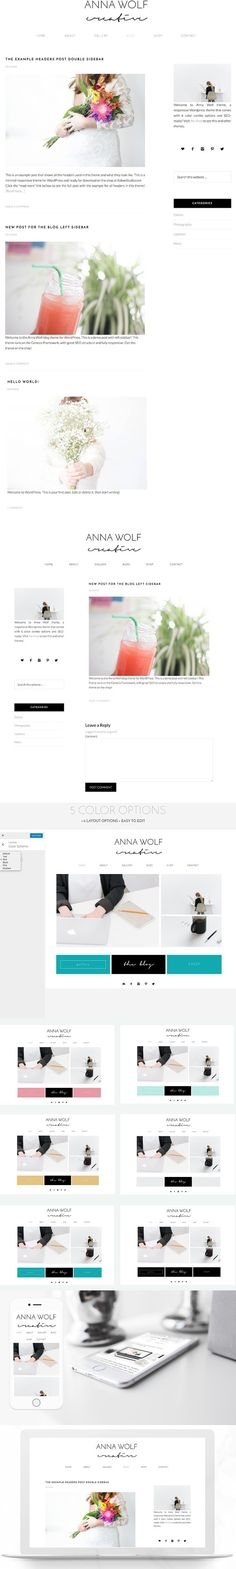 6 Colors Wordpress BLOG Anna Wolf. WordPress Blog Themes. $45.00